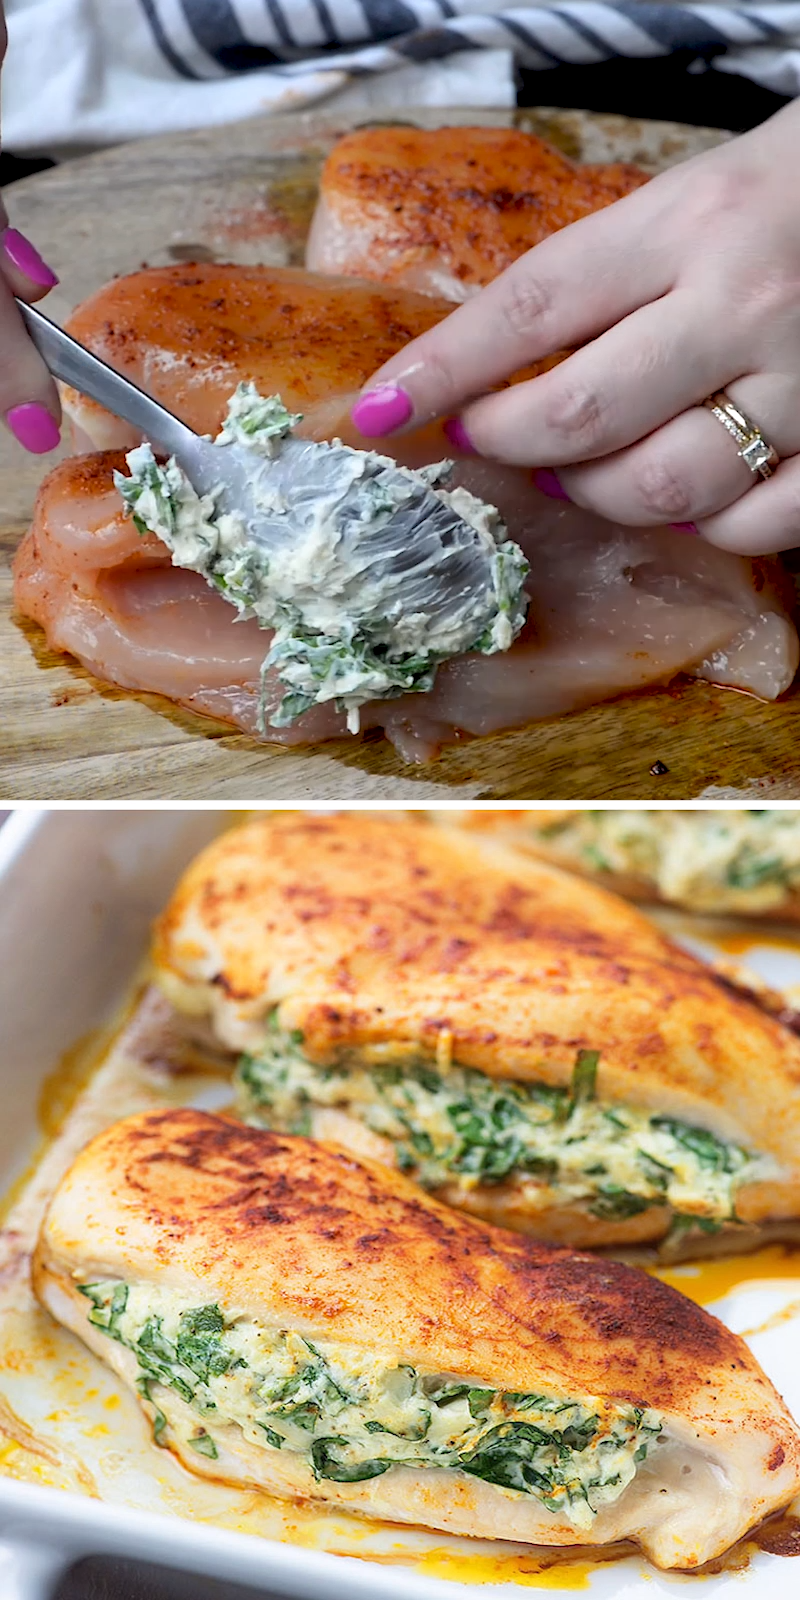 Low carb and keto friendly! This spinach stuffed chicken is a family favorite and it's easier than you'd think!Low #carb #and #keto #friendly! #This #spinach #stuffed #chicken #is #a #family #favorite #and #it's #easier #than #you'd #think! #spinach